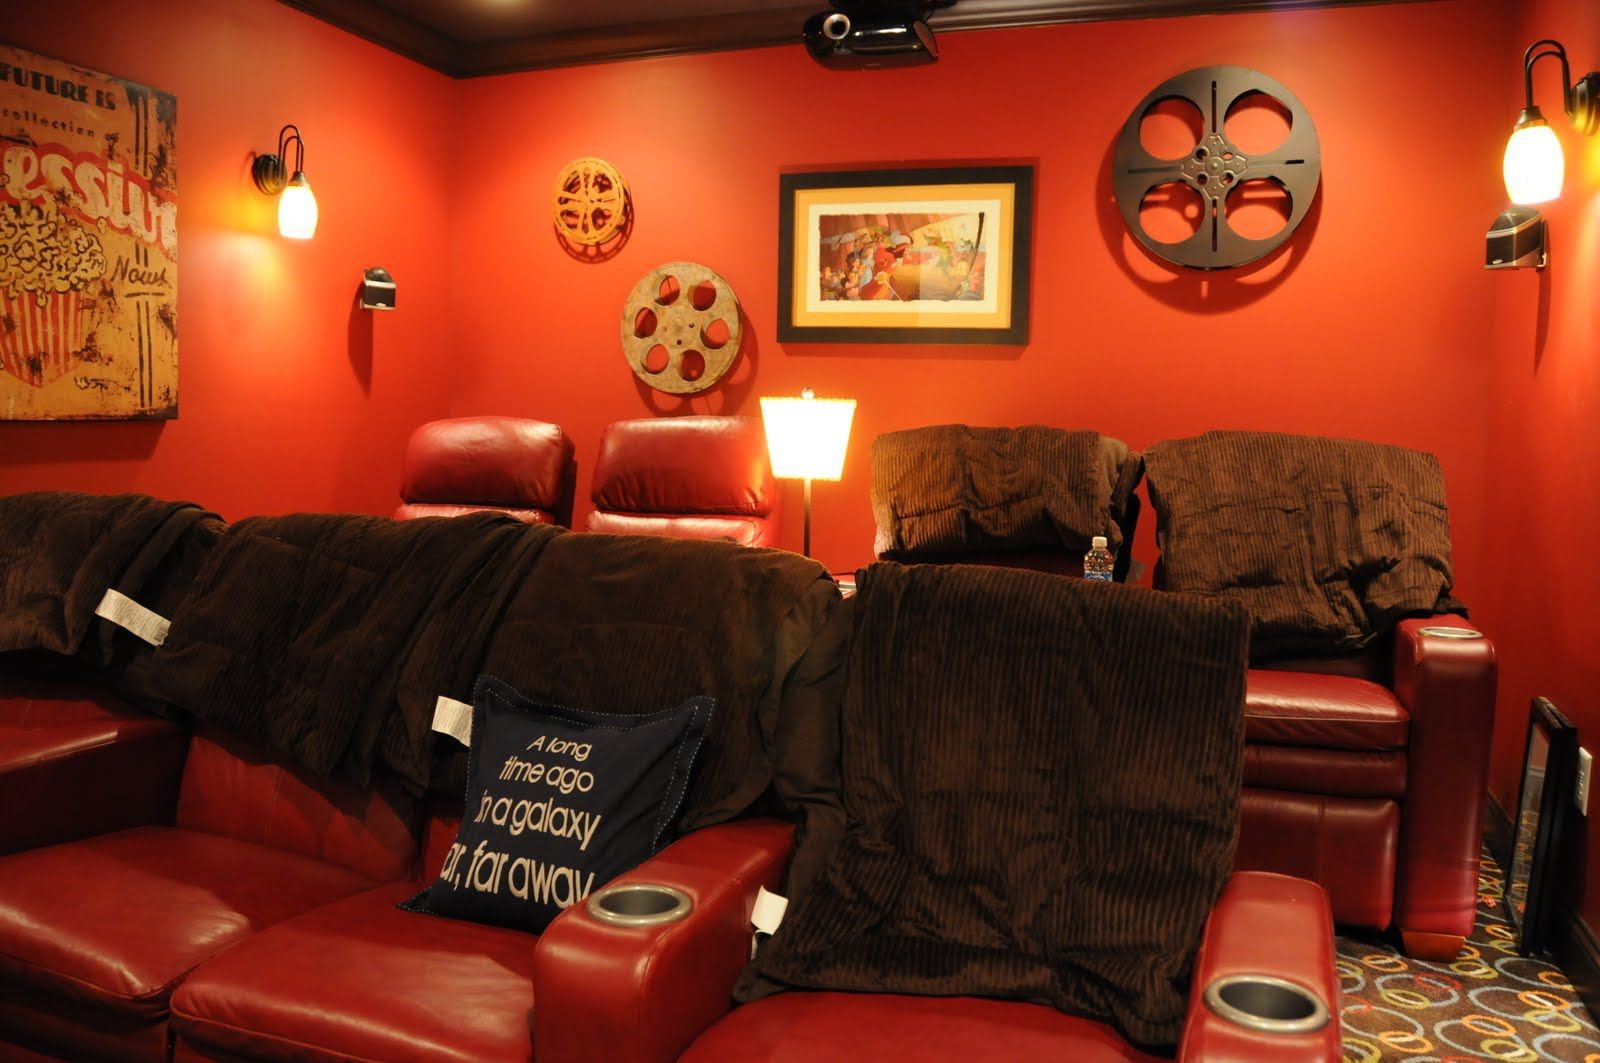 Home Theater Room Decorating Ideas The Polkadot Chair Home Theater Decor Theater Room Decor Home Entertainment Furniture